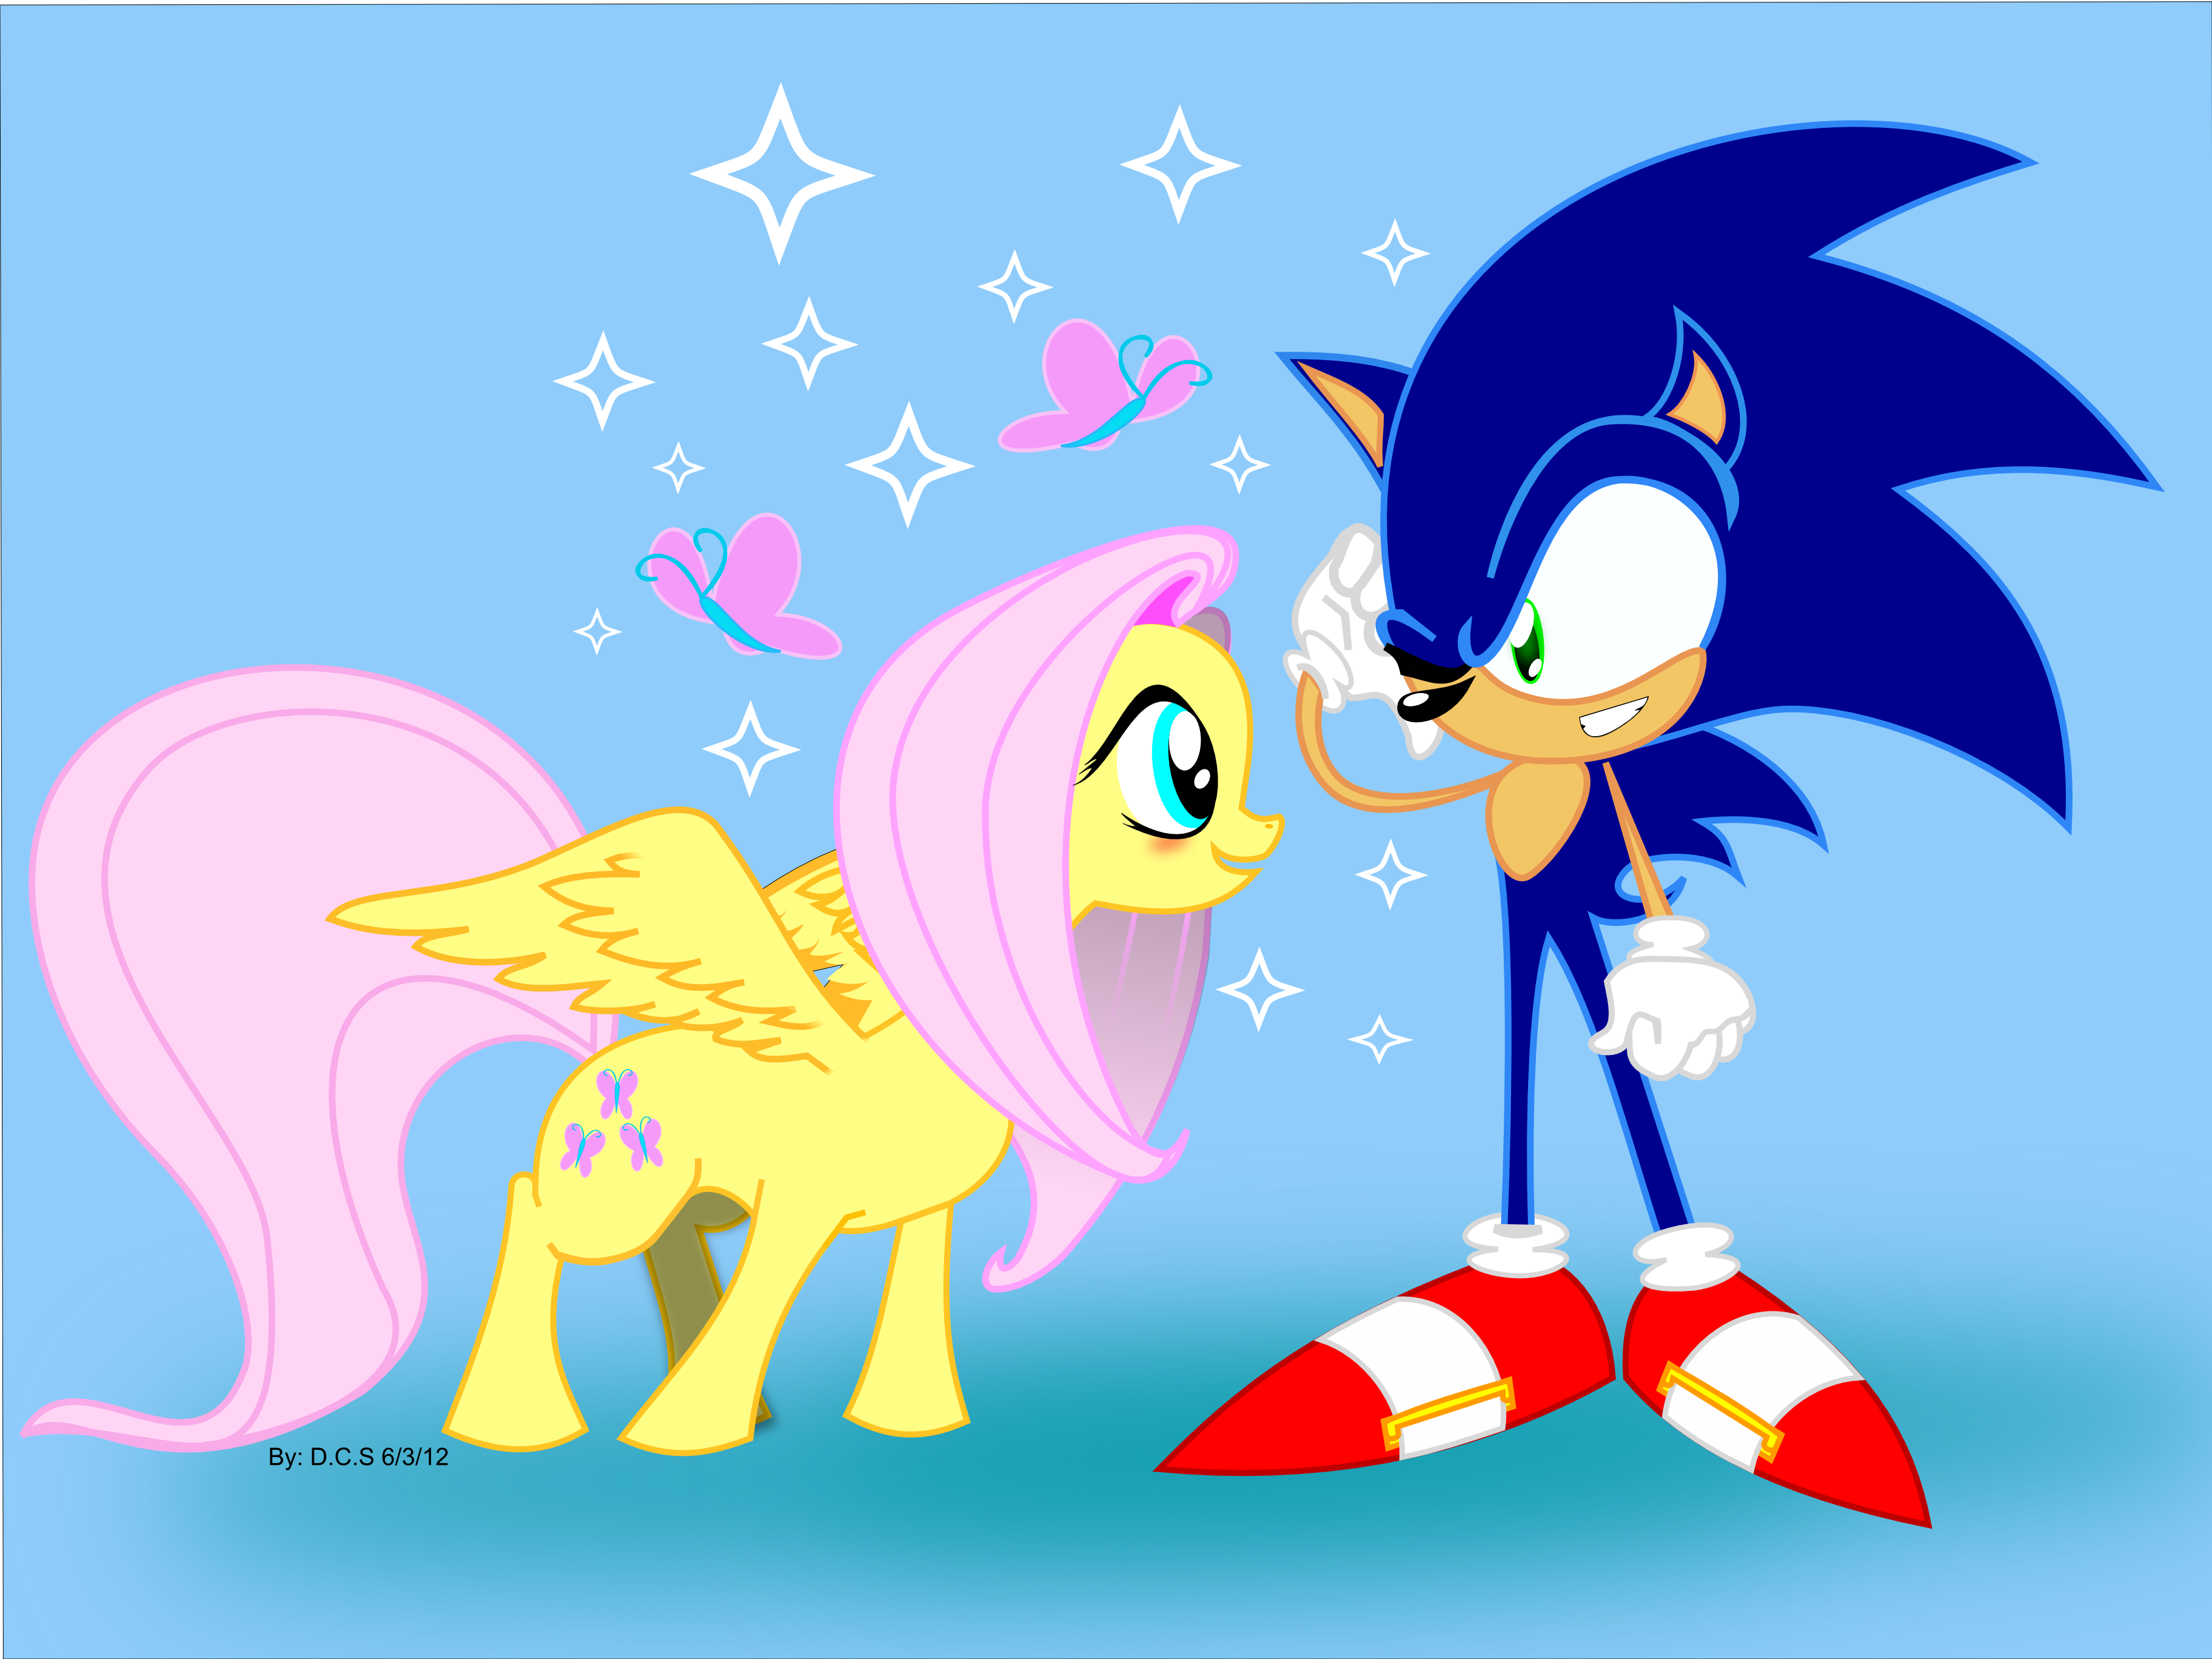 What Is Your Favorite Sonic The Hedgehog My Little Pony